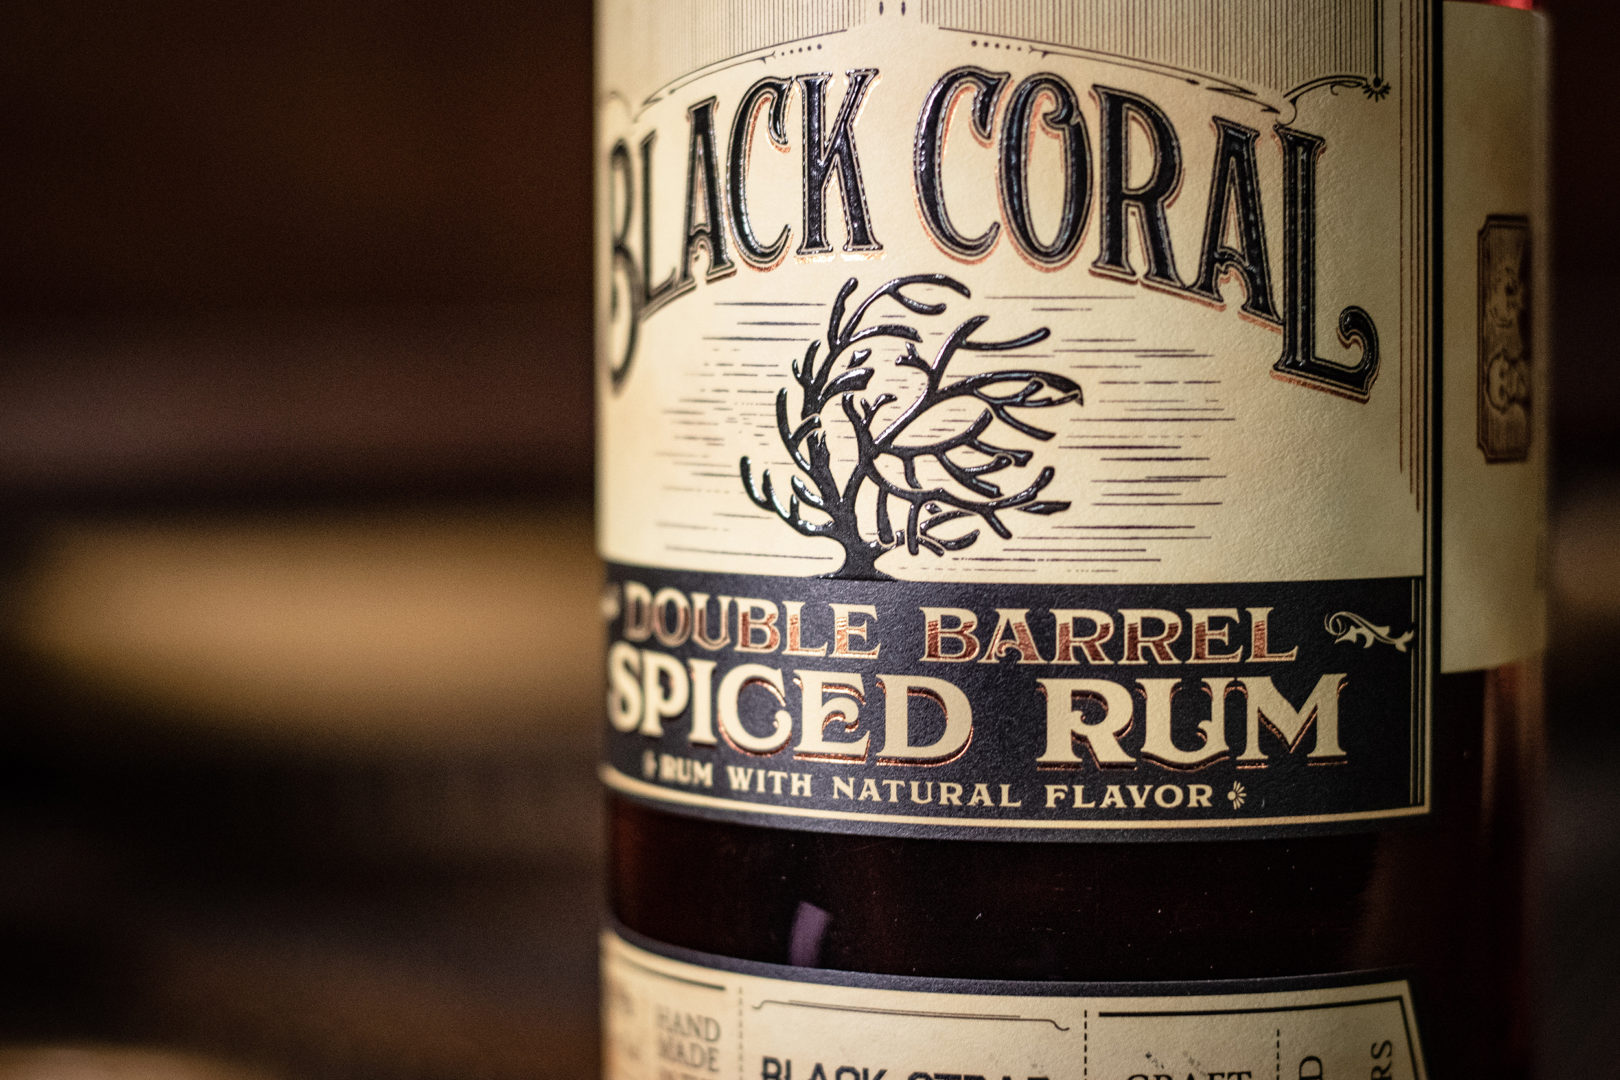 Double Barrel Spiced Rum Label Close Up